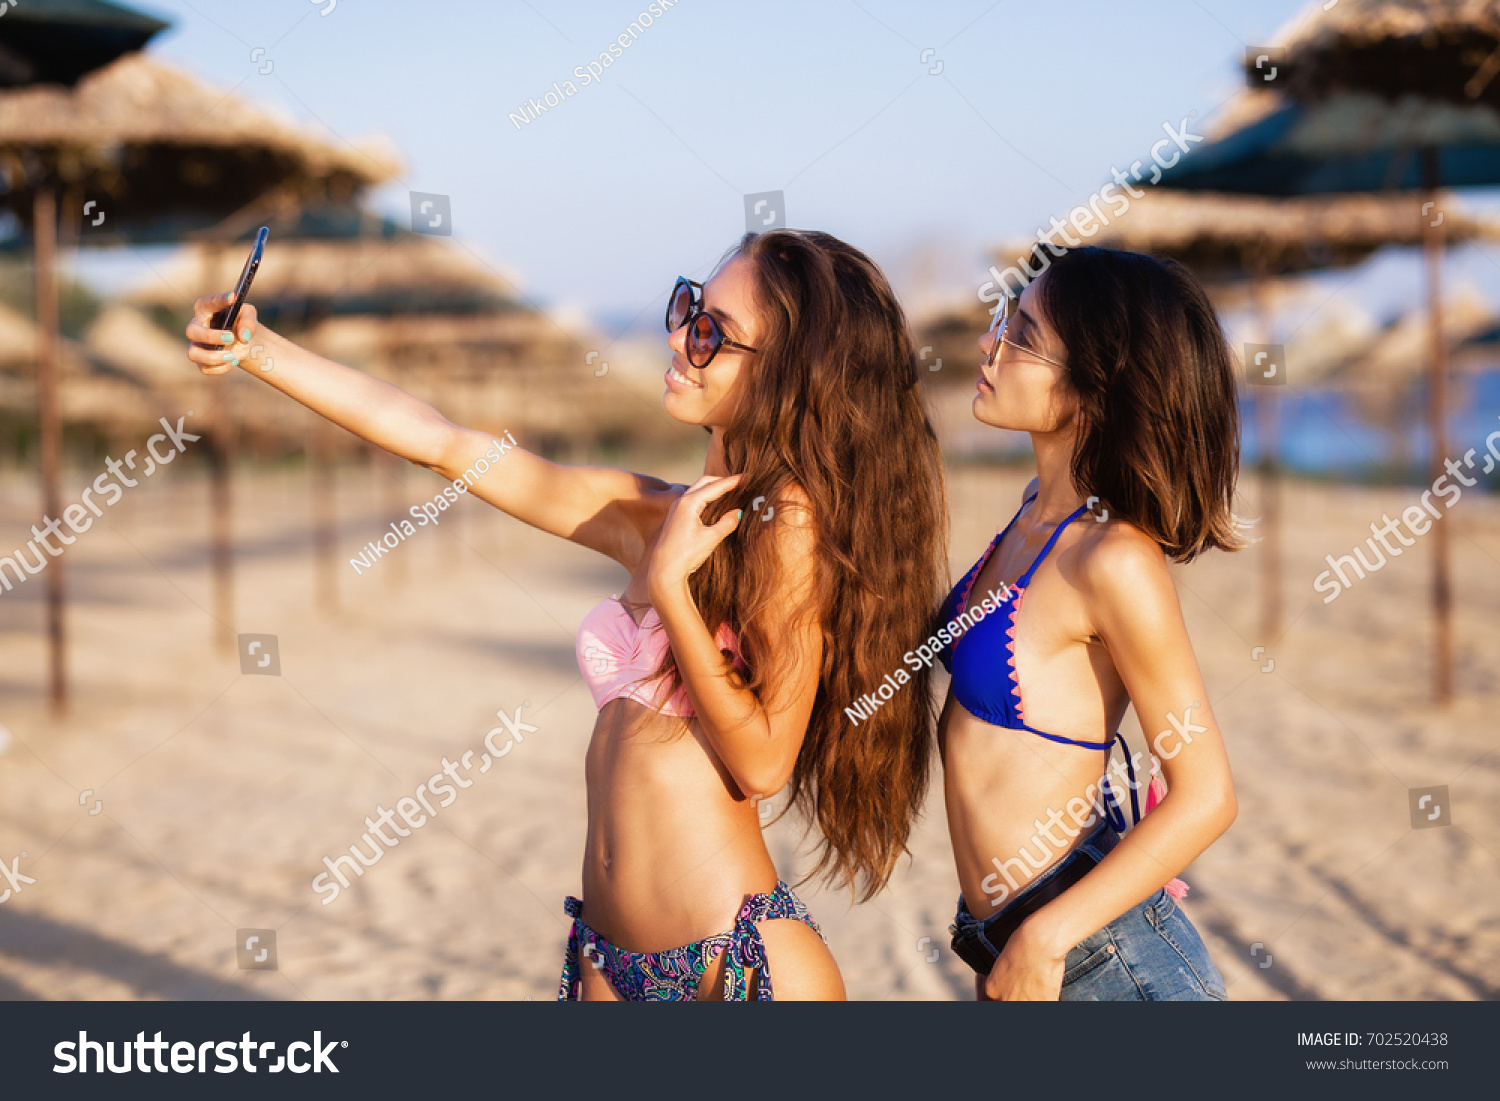 Two Sexy Girls Taking Selfie On Stock Photo Edit Now 702520438